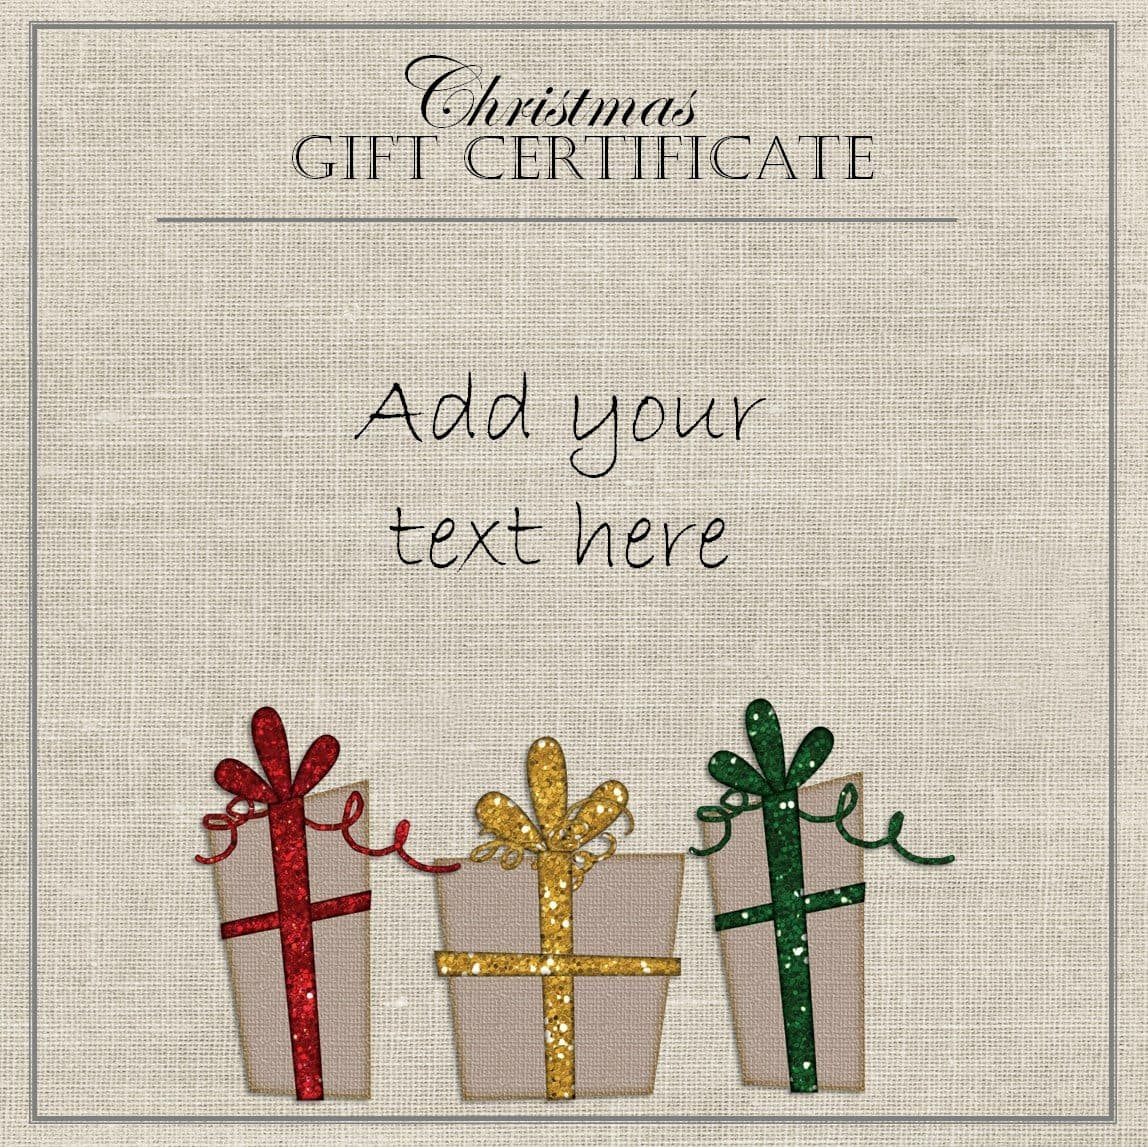 Elegant Gift Certificate Template With Three Gifts With Red, Yellow And  Green Ribbons  Printable Christmas Gift Certificates Templates Free